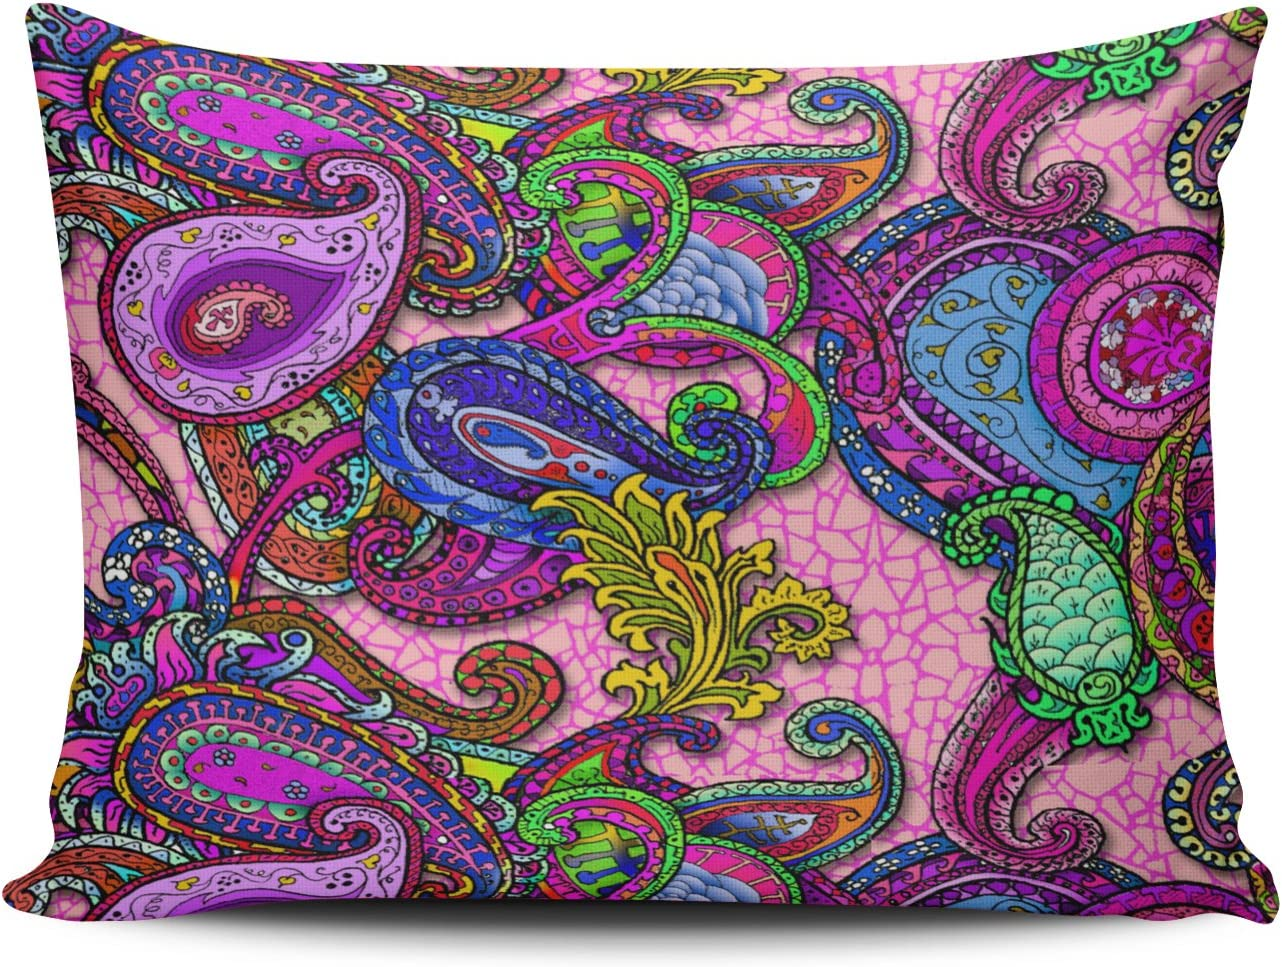 Hoooottle Custom Melange Paisley with Pink Pretty Pillowcase Rectangle Zippered One Side Design Printed 20x30 Inch Queen Throw Pillow Case Cushion Cover